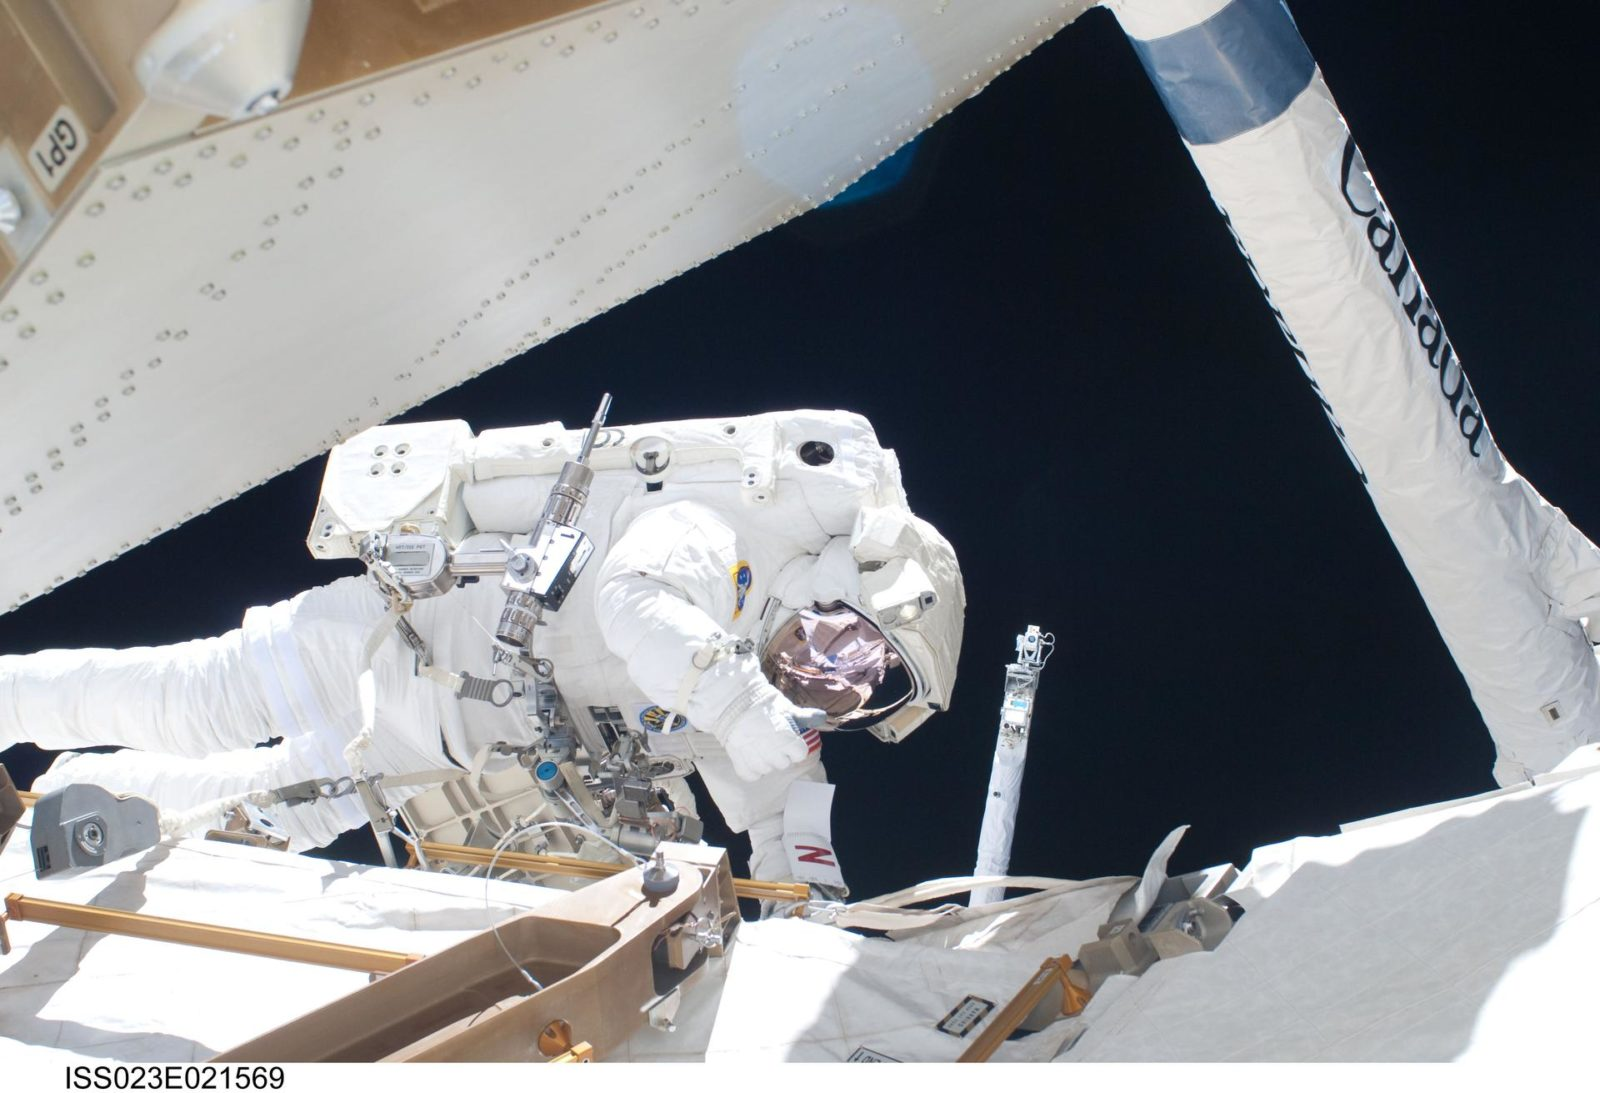 Anderson during EVA 2